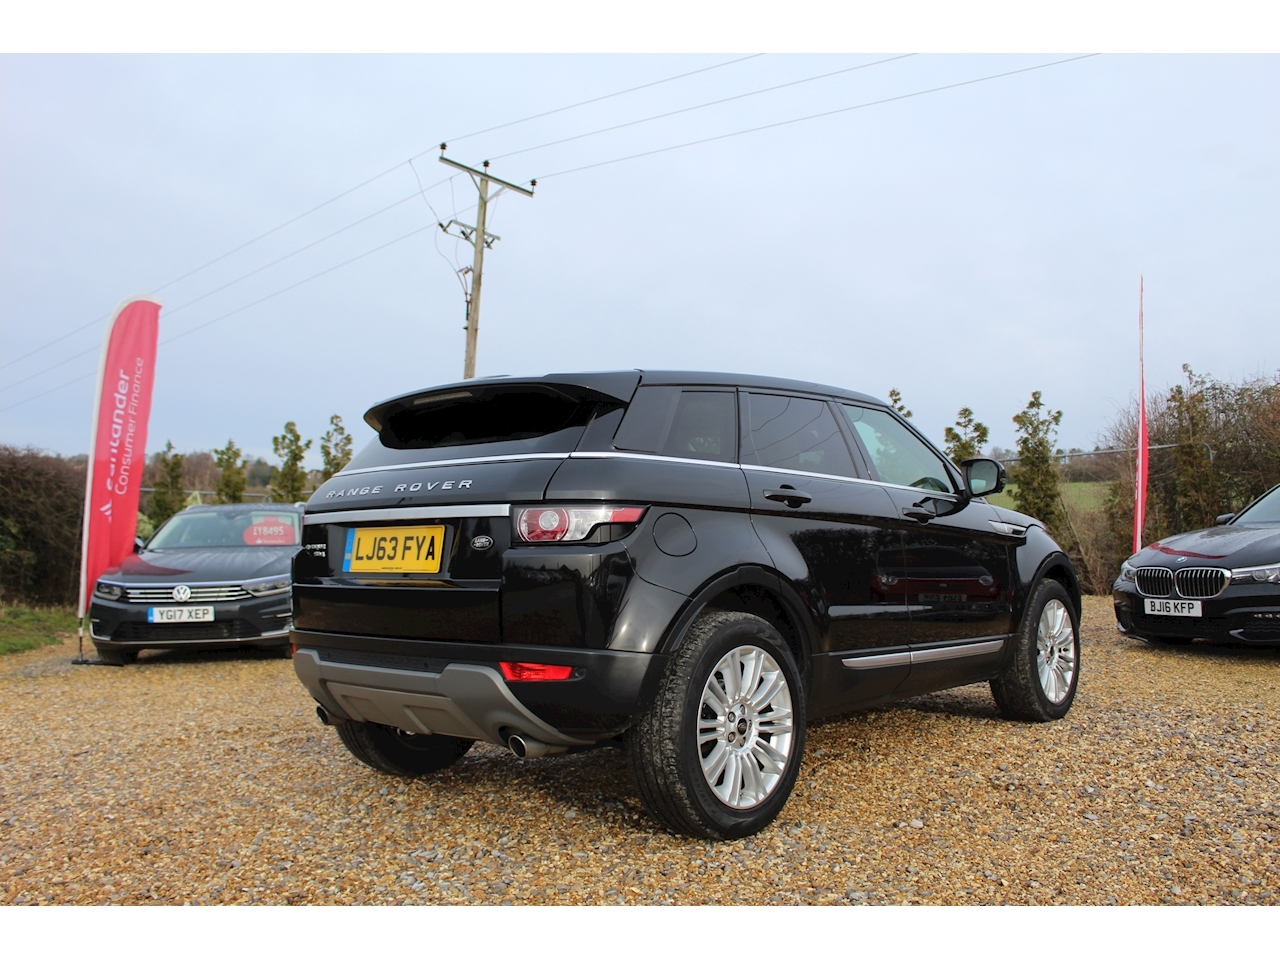 Land Rover Range Rover Evoque Sd4 Prestige Lux Estate 2.2 Automatic Diesel